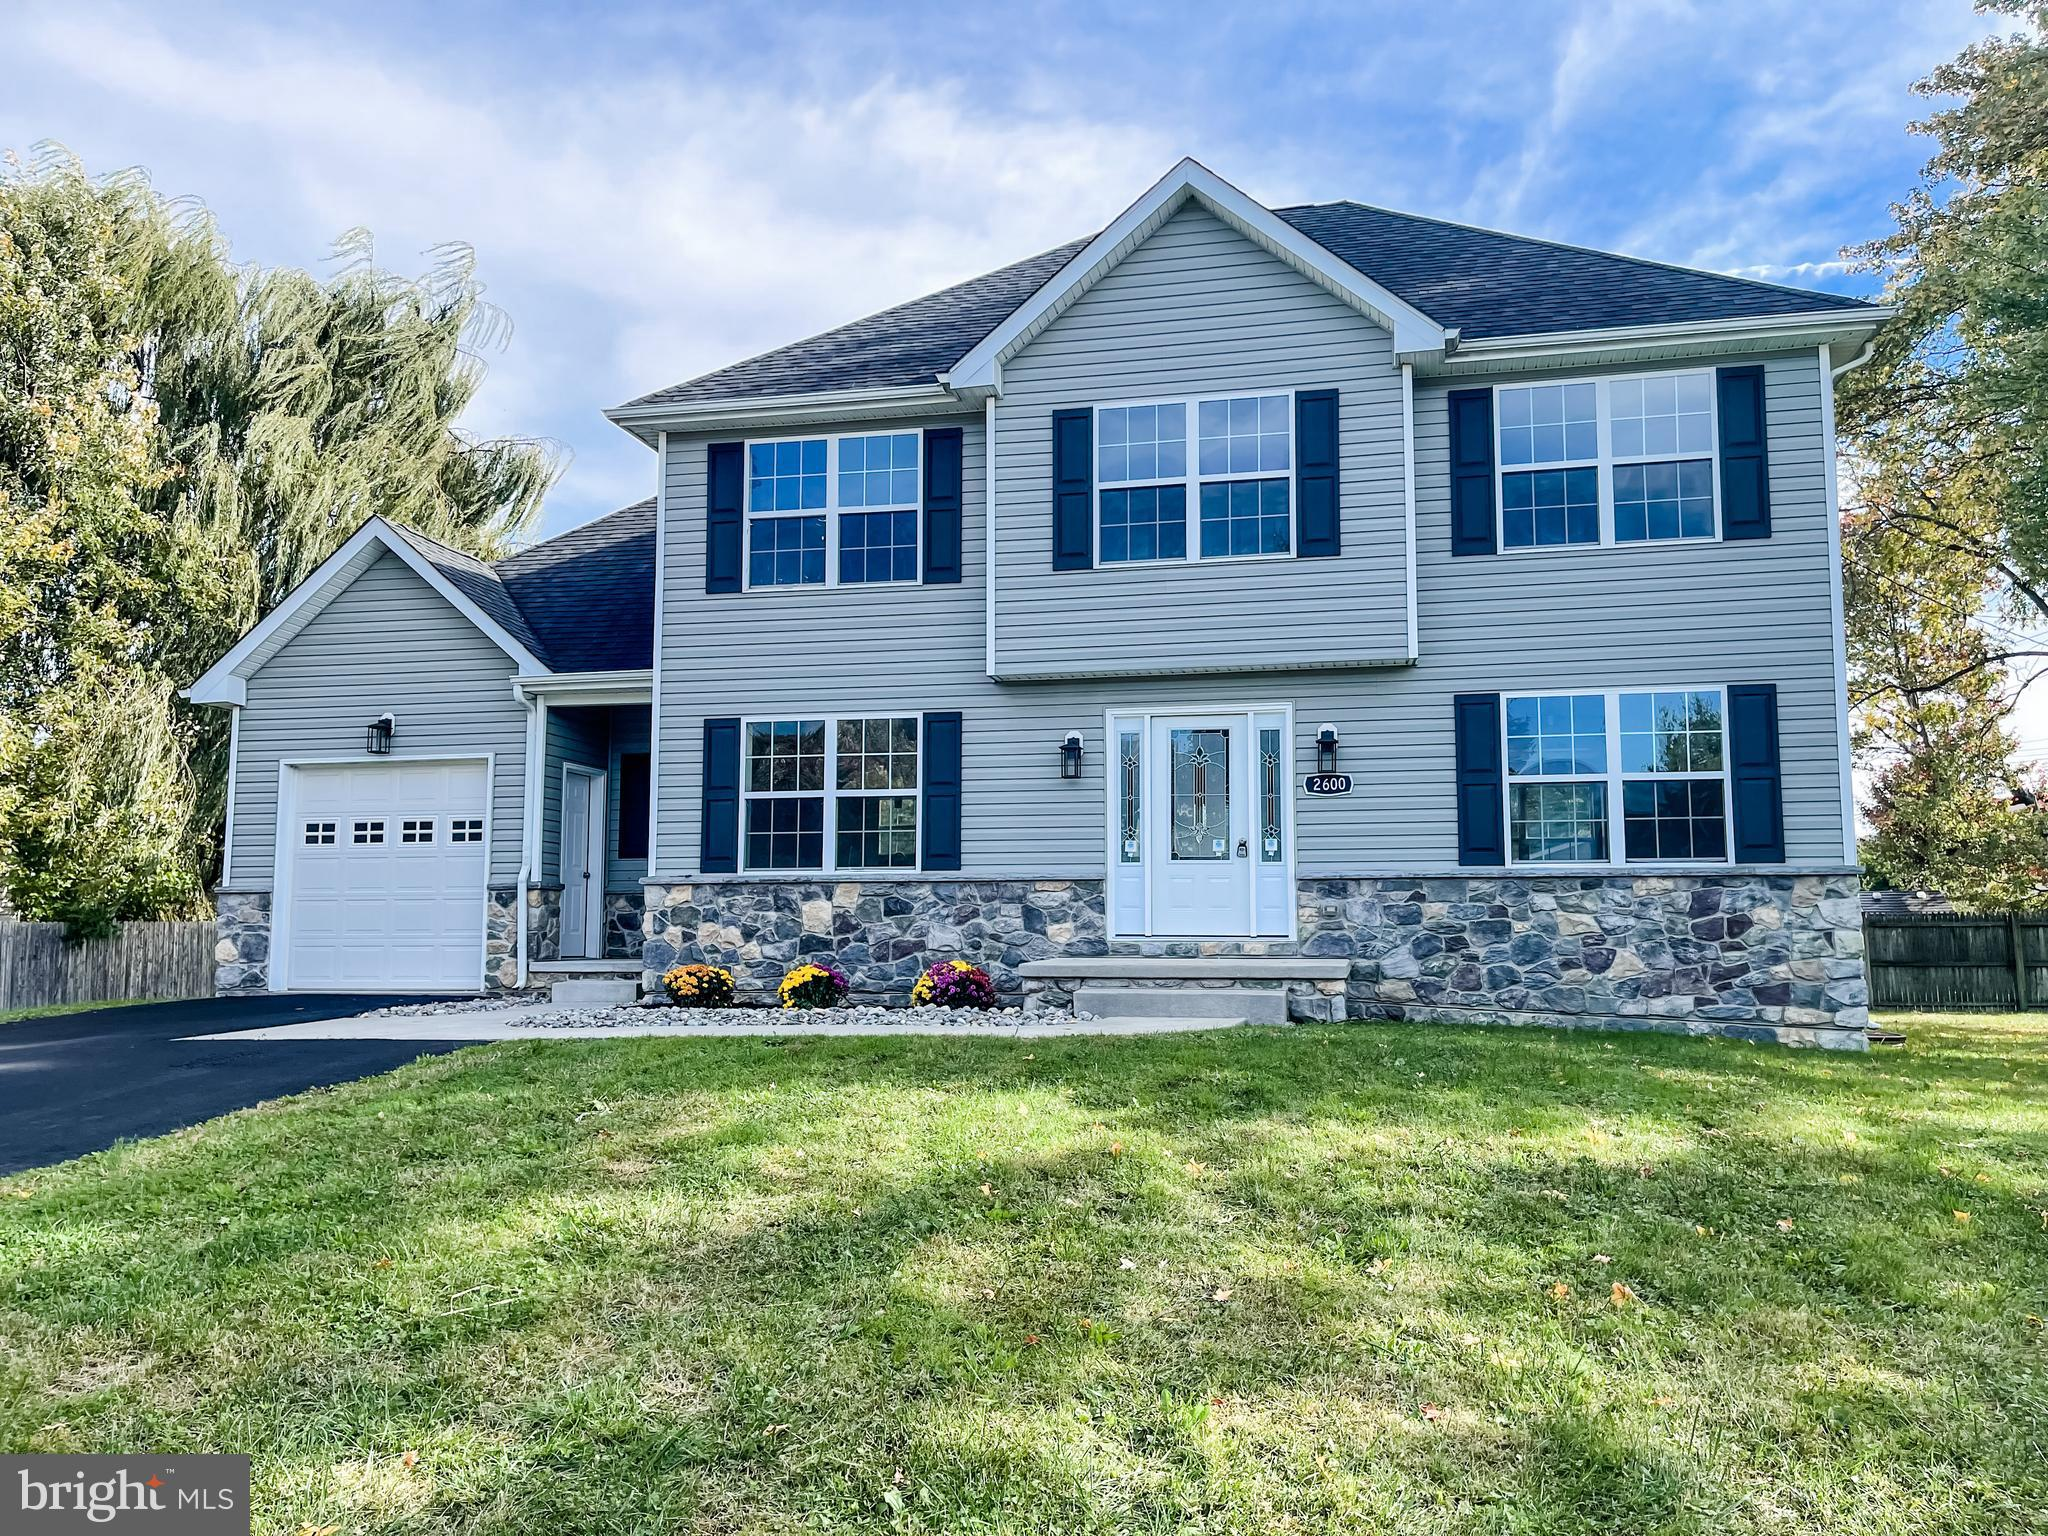 Welcome to this exquisite, custom built home conveniently located in North Wilmington. Featuring 4 b